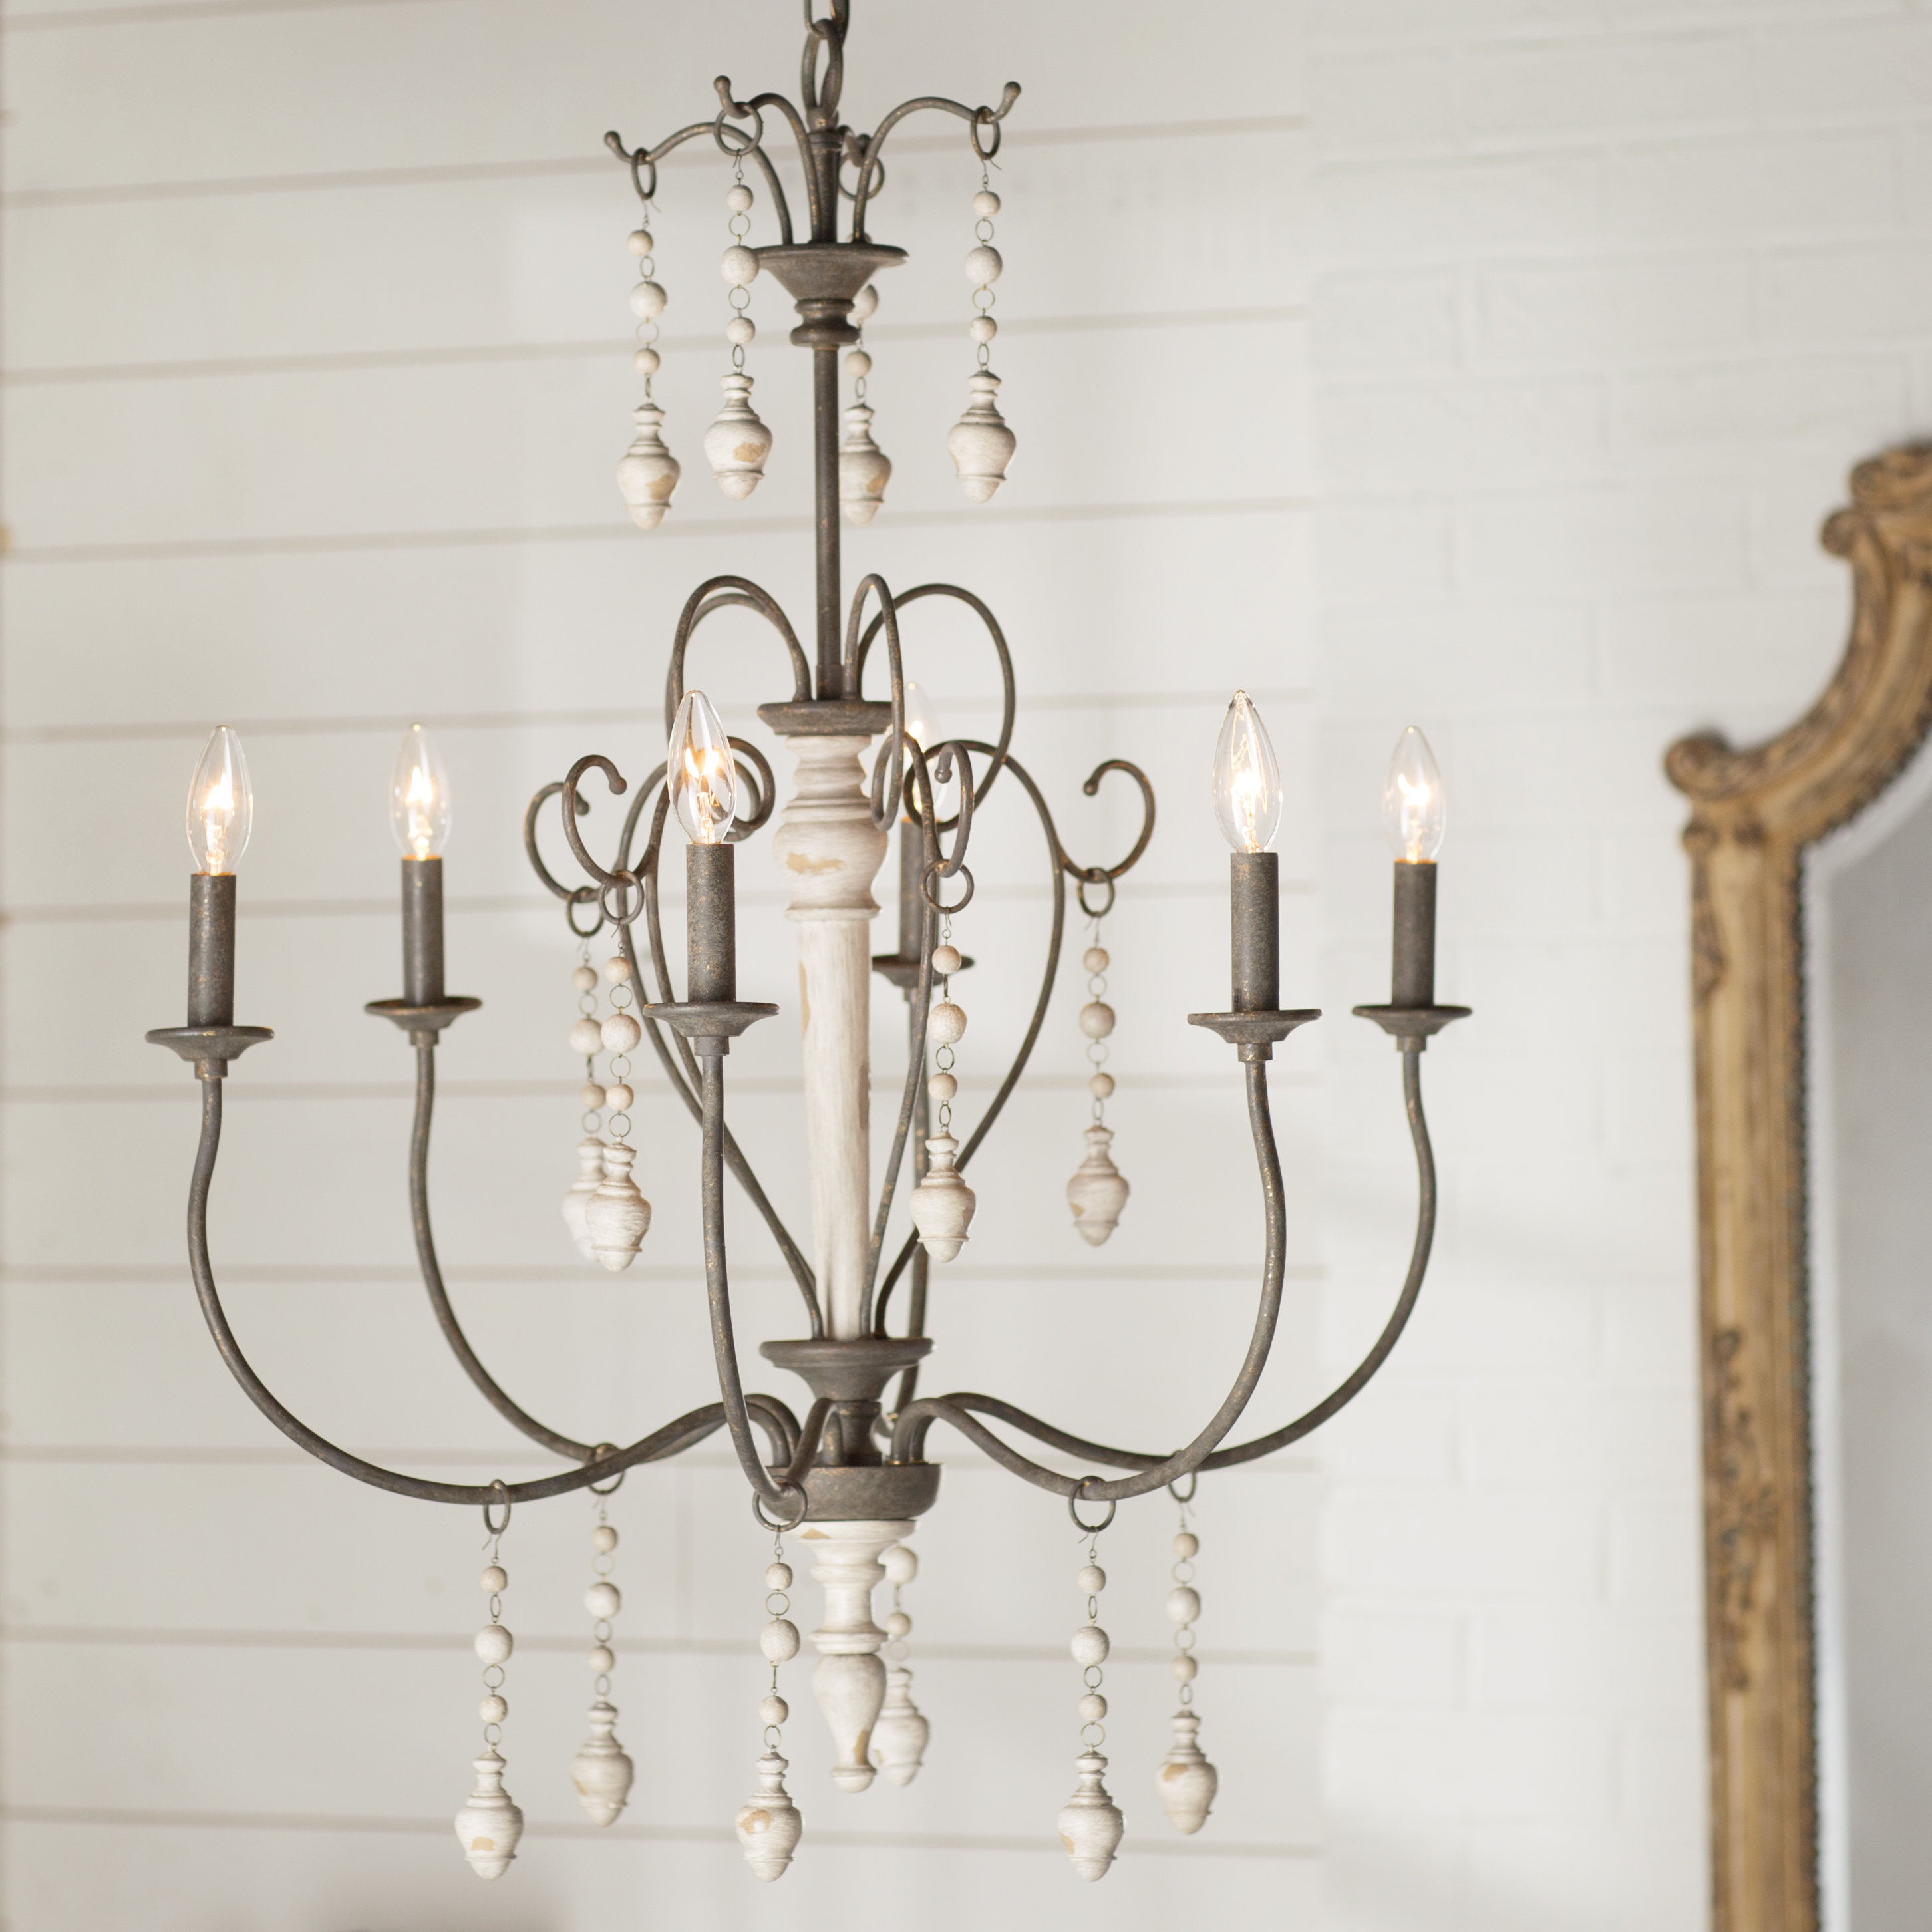 Hamza 6 Light Candle Style Chandeliers Intended For Well Liked Farmhouse & Rustic Candle Style Chandeliers (Gallery 8 of 25)